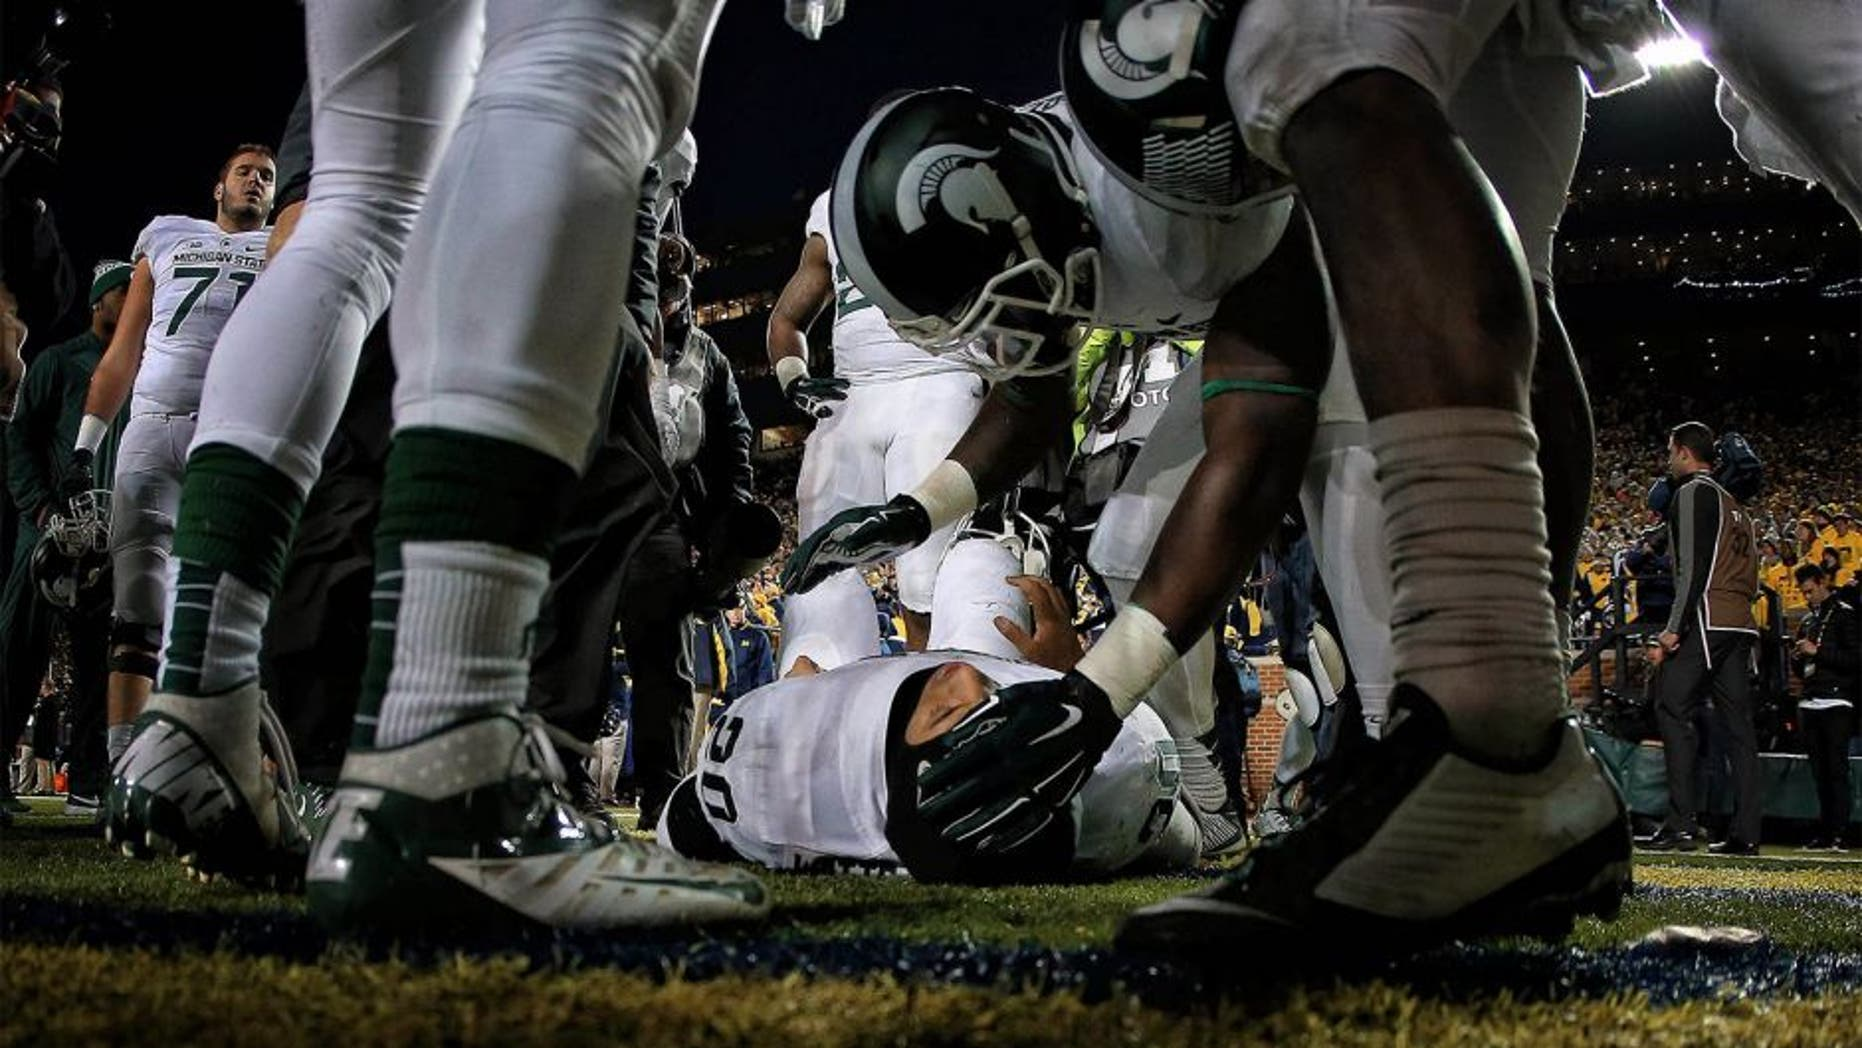 Oct 17, 2015; Ann Arbor, MI, USA; Injured Michigan State Spartans defensive back Jalen Watts-Jackson (20) is talked to by teamates before being carted off the field during the 2nd half of a game at Michigan Stadium. Mandatory Credit: Mike Carter-USA TODAY Sports